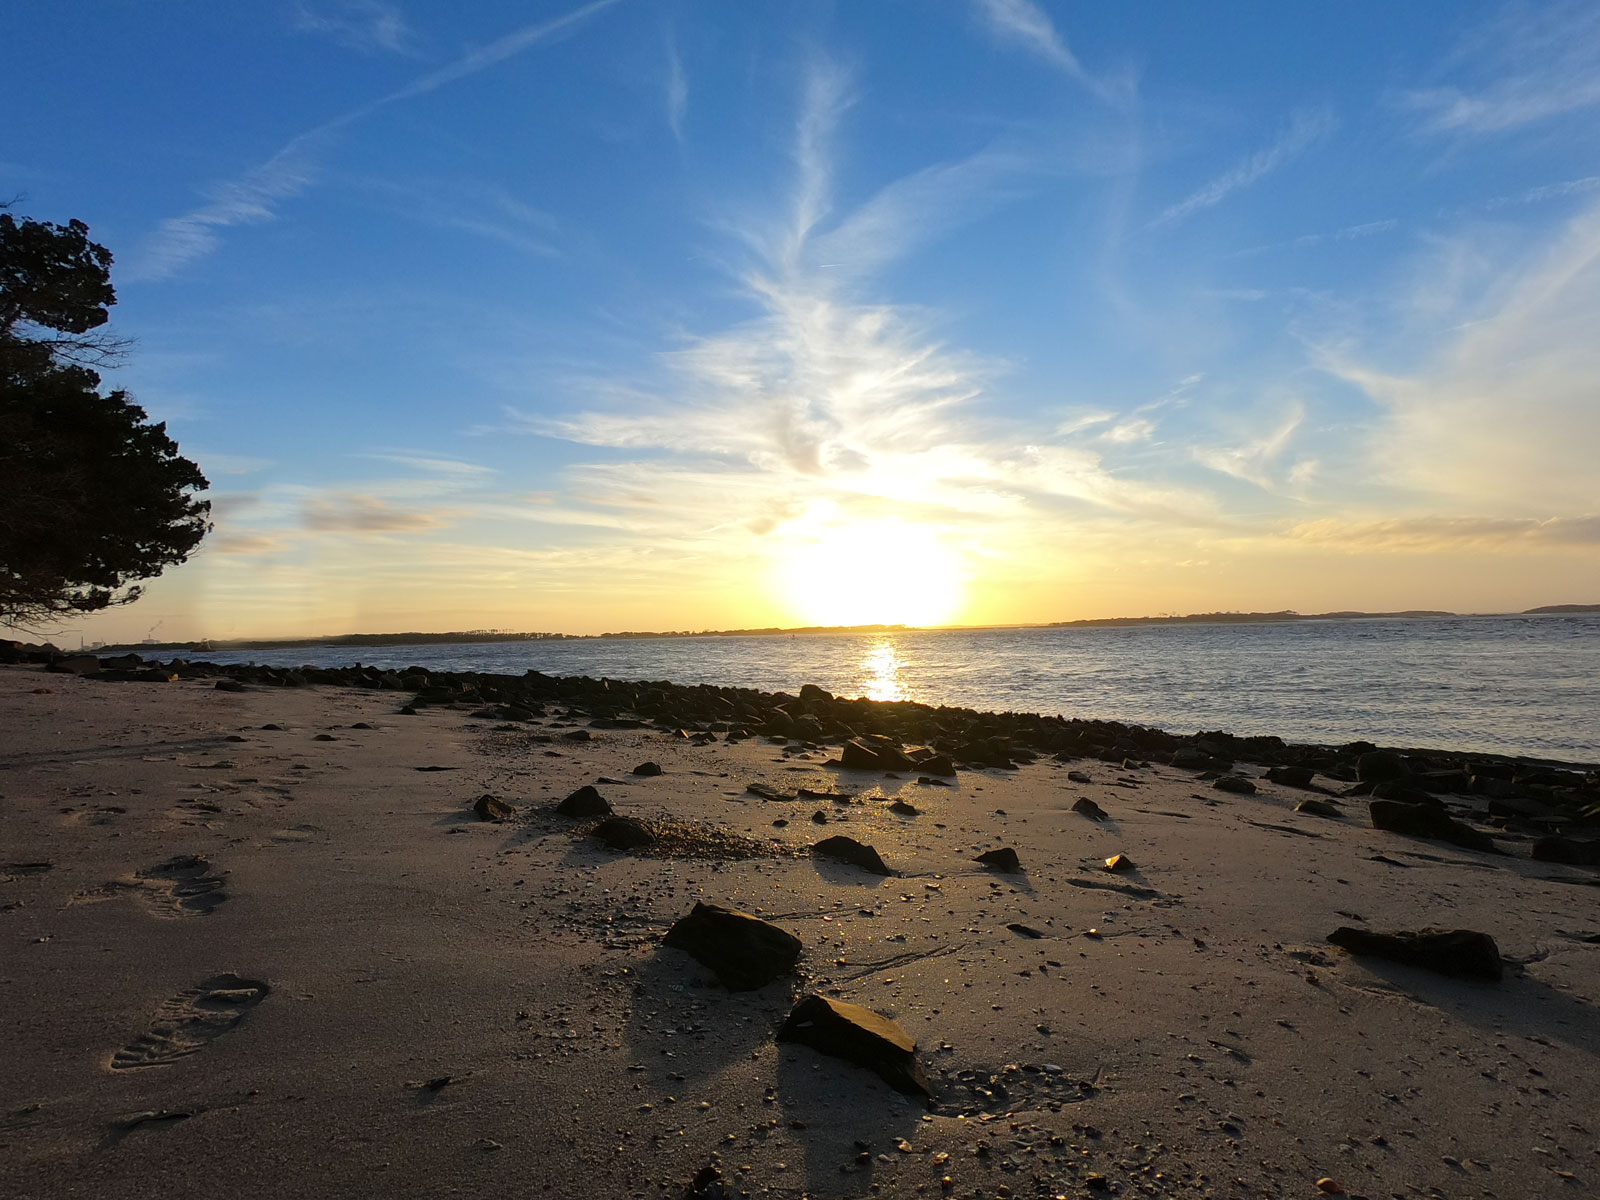 Sunset on Amelia River on rocky shore near Amelia River campground at Fort Clinch State Park, Florida